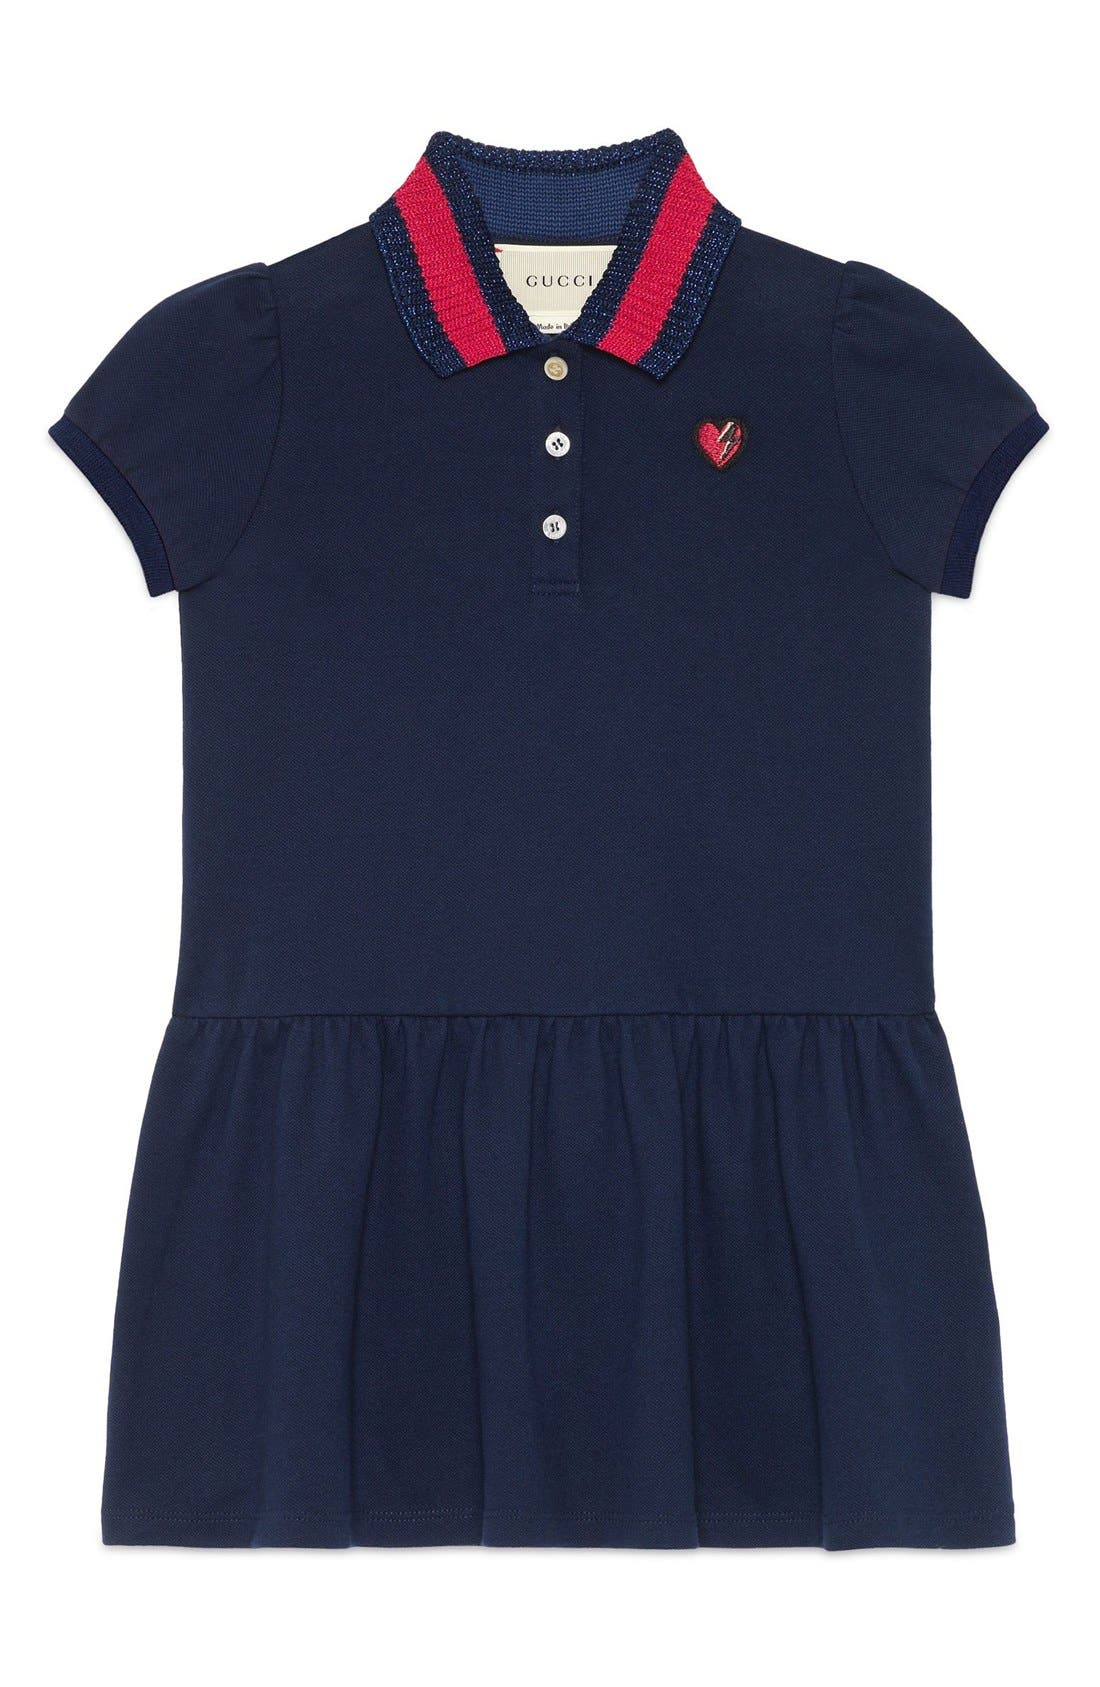 Main Image - Gucci Embroidered Dress (Little Girls & Big Girls)